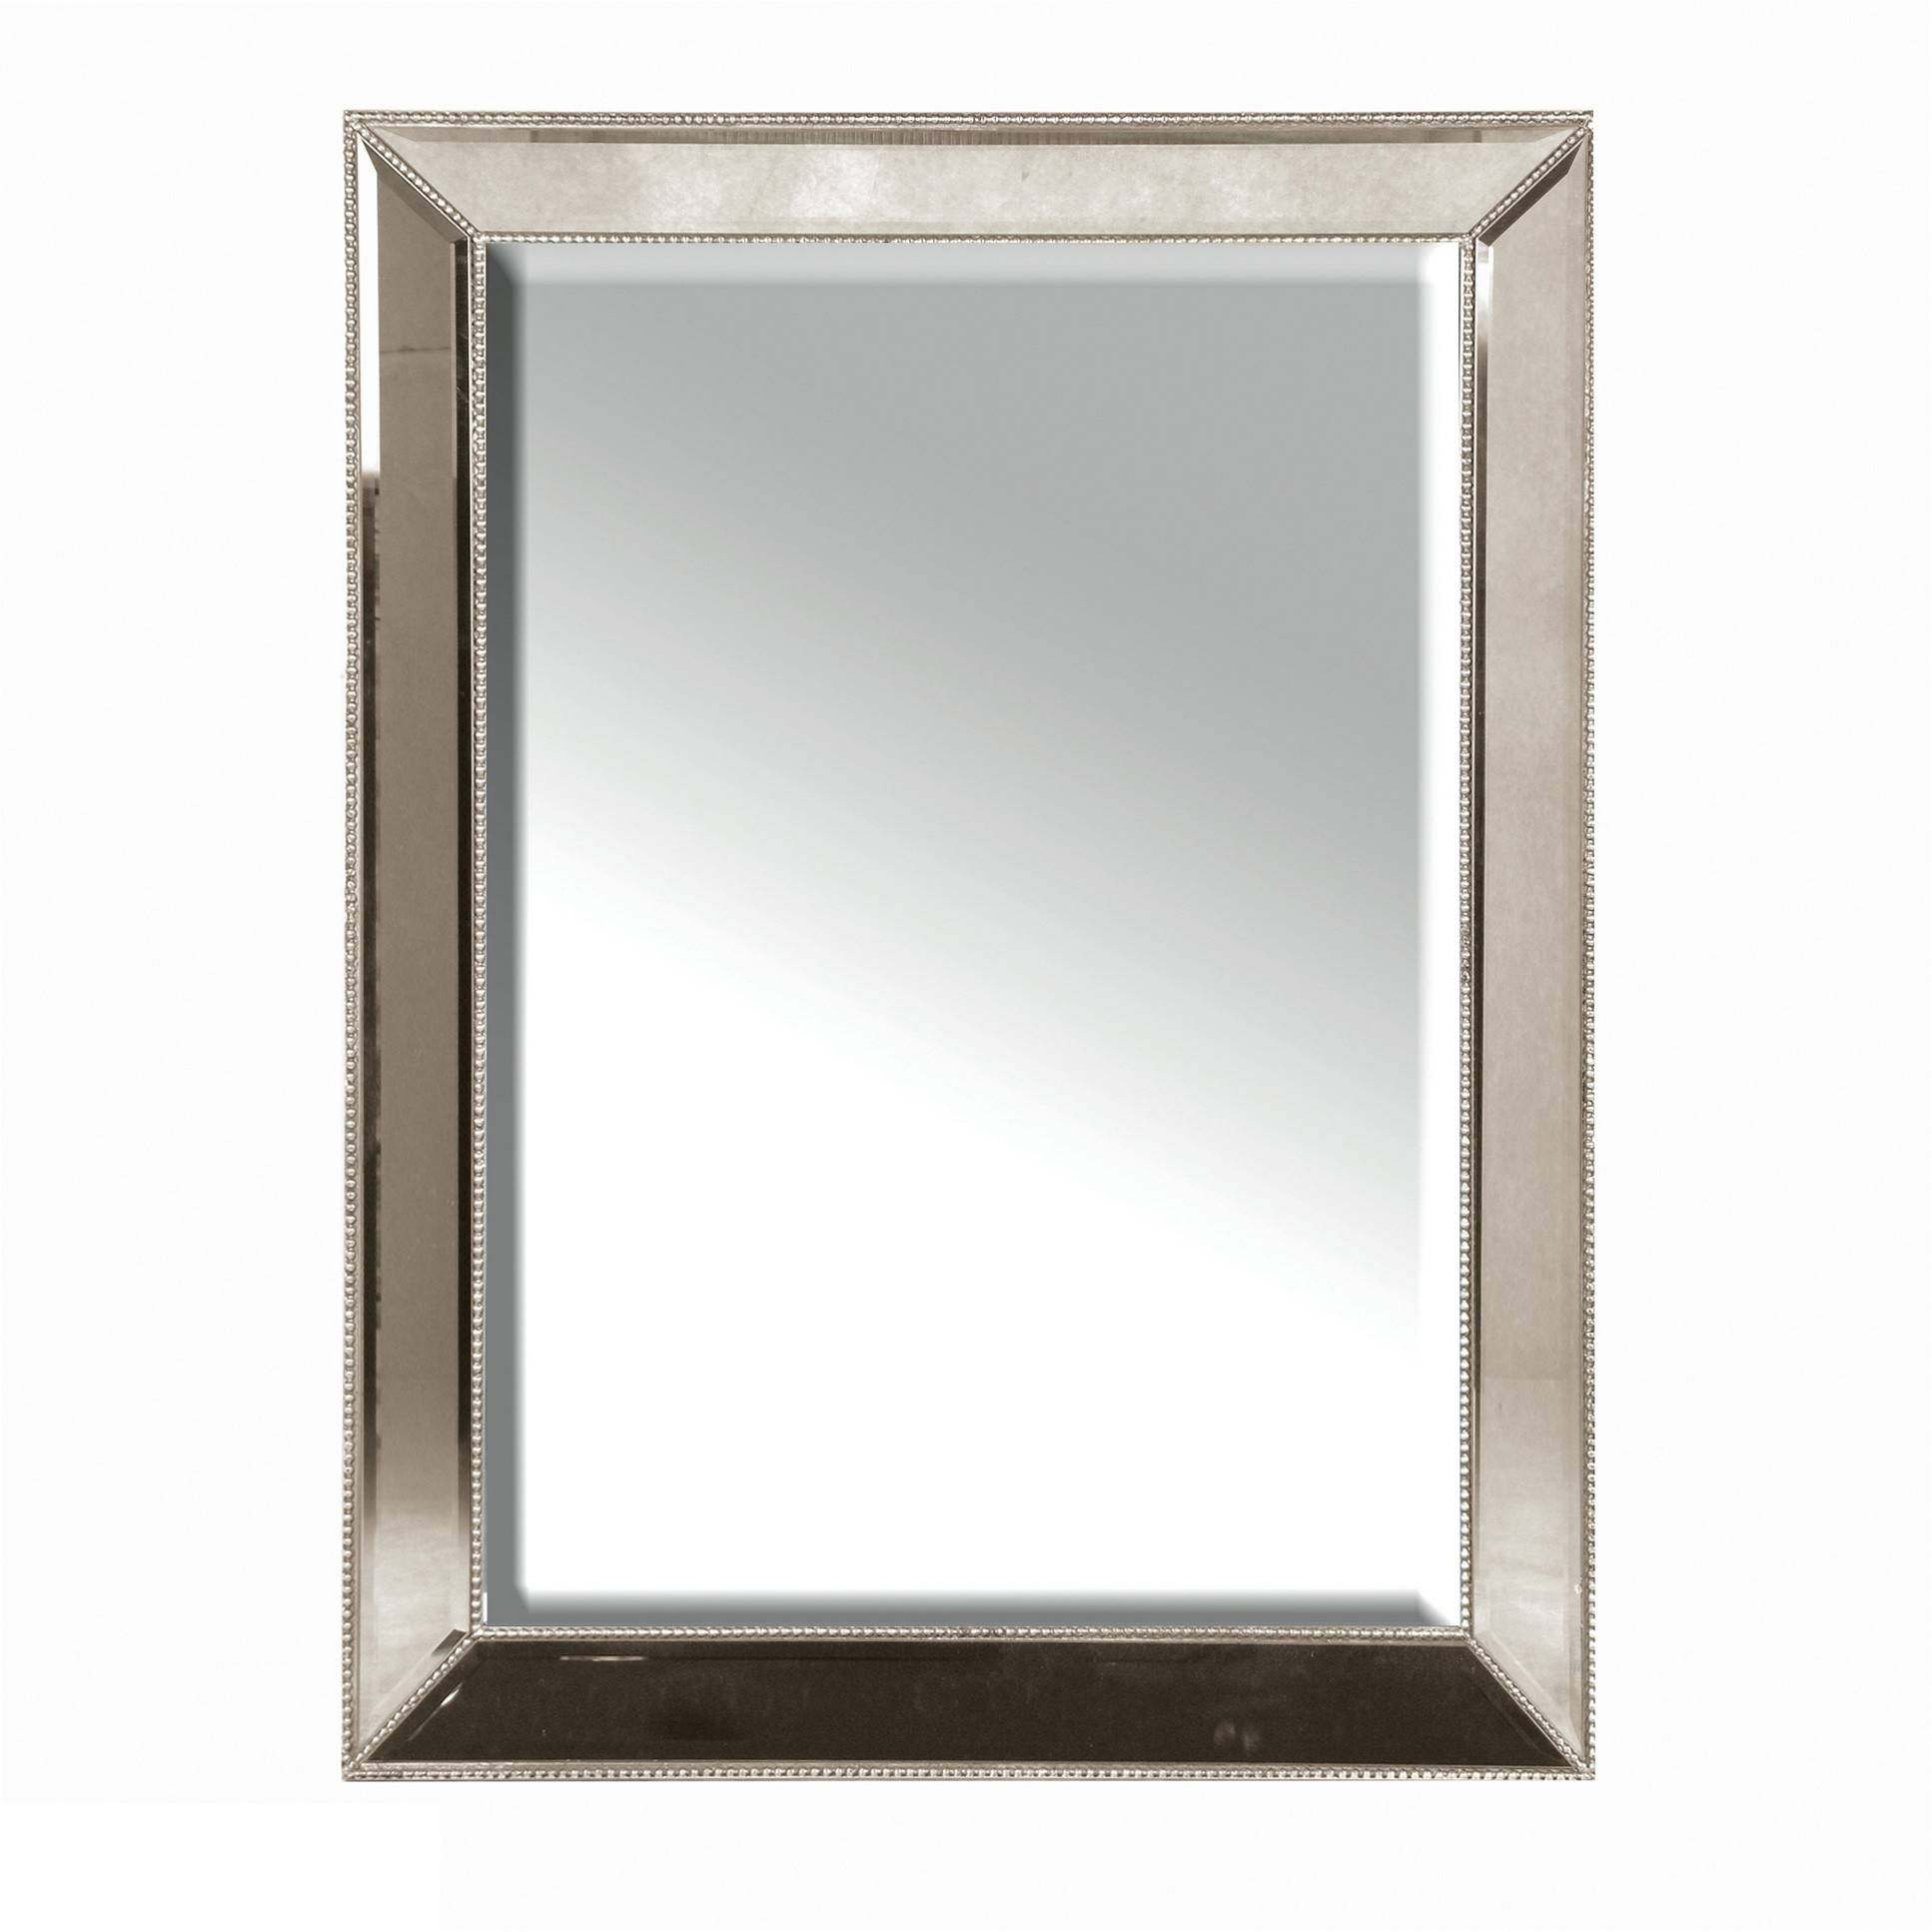 Venetian Mirror With Stud Frame With Rectangular Venetian Mirrors (View 3 of 15)